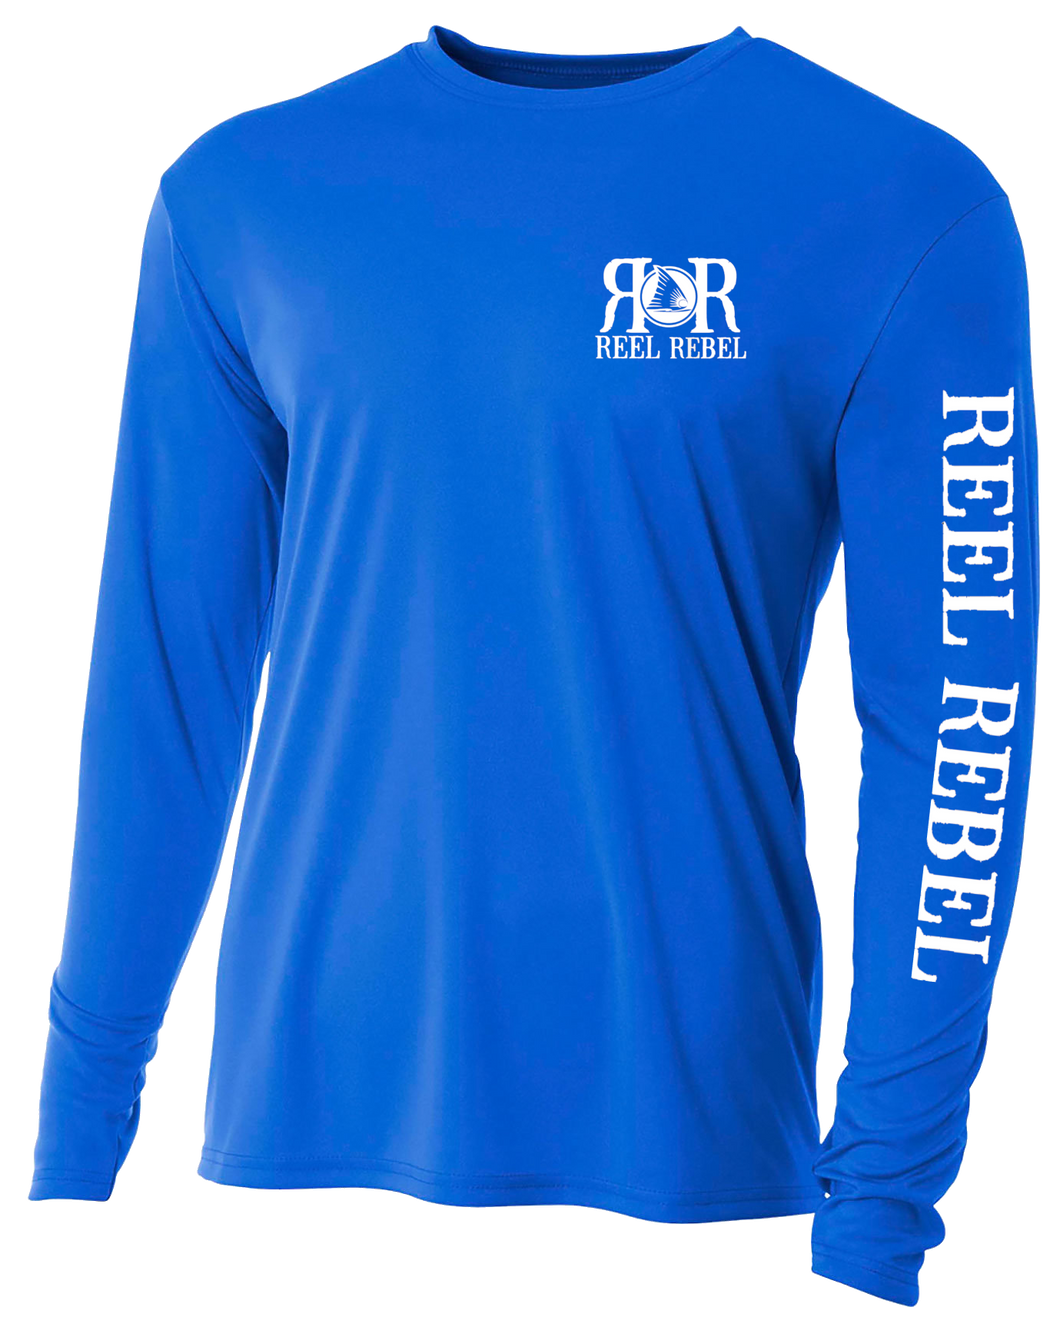 Reel Rebel UPF Performance Shirt with Nautical Compass